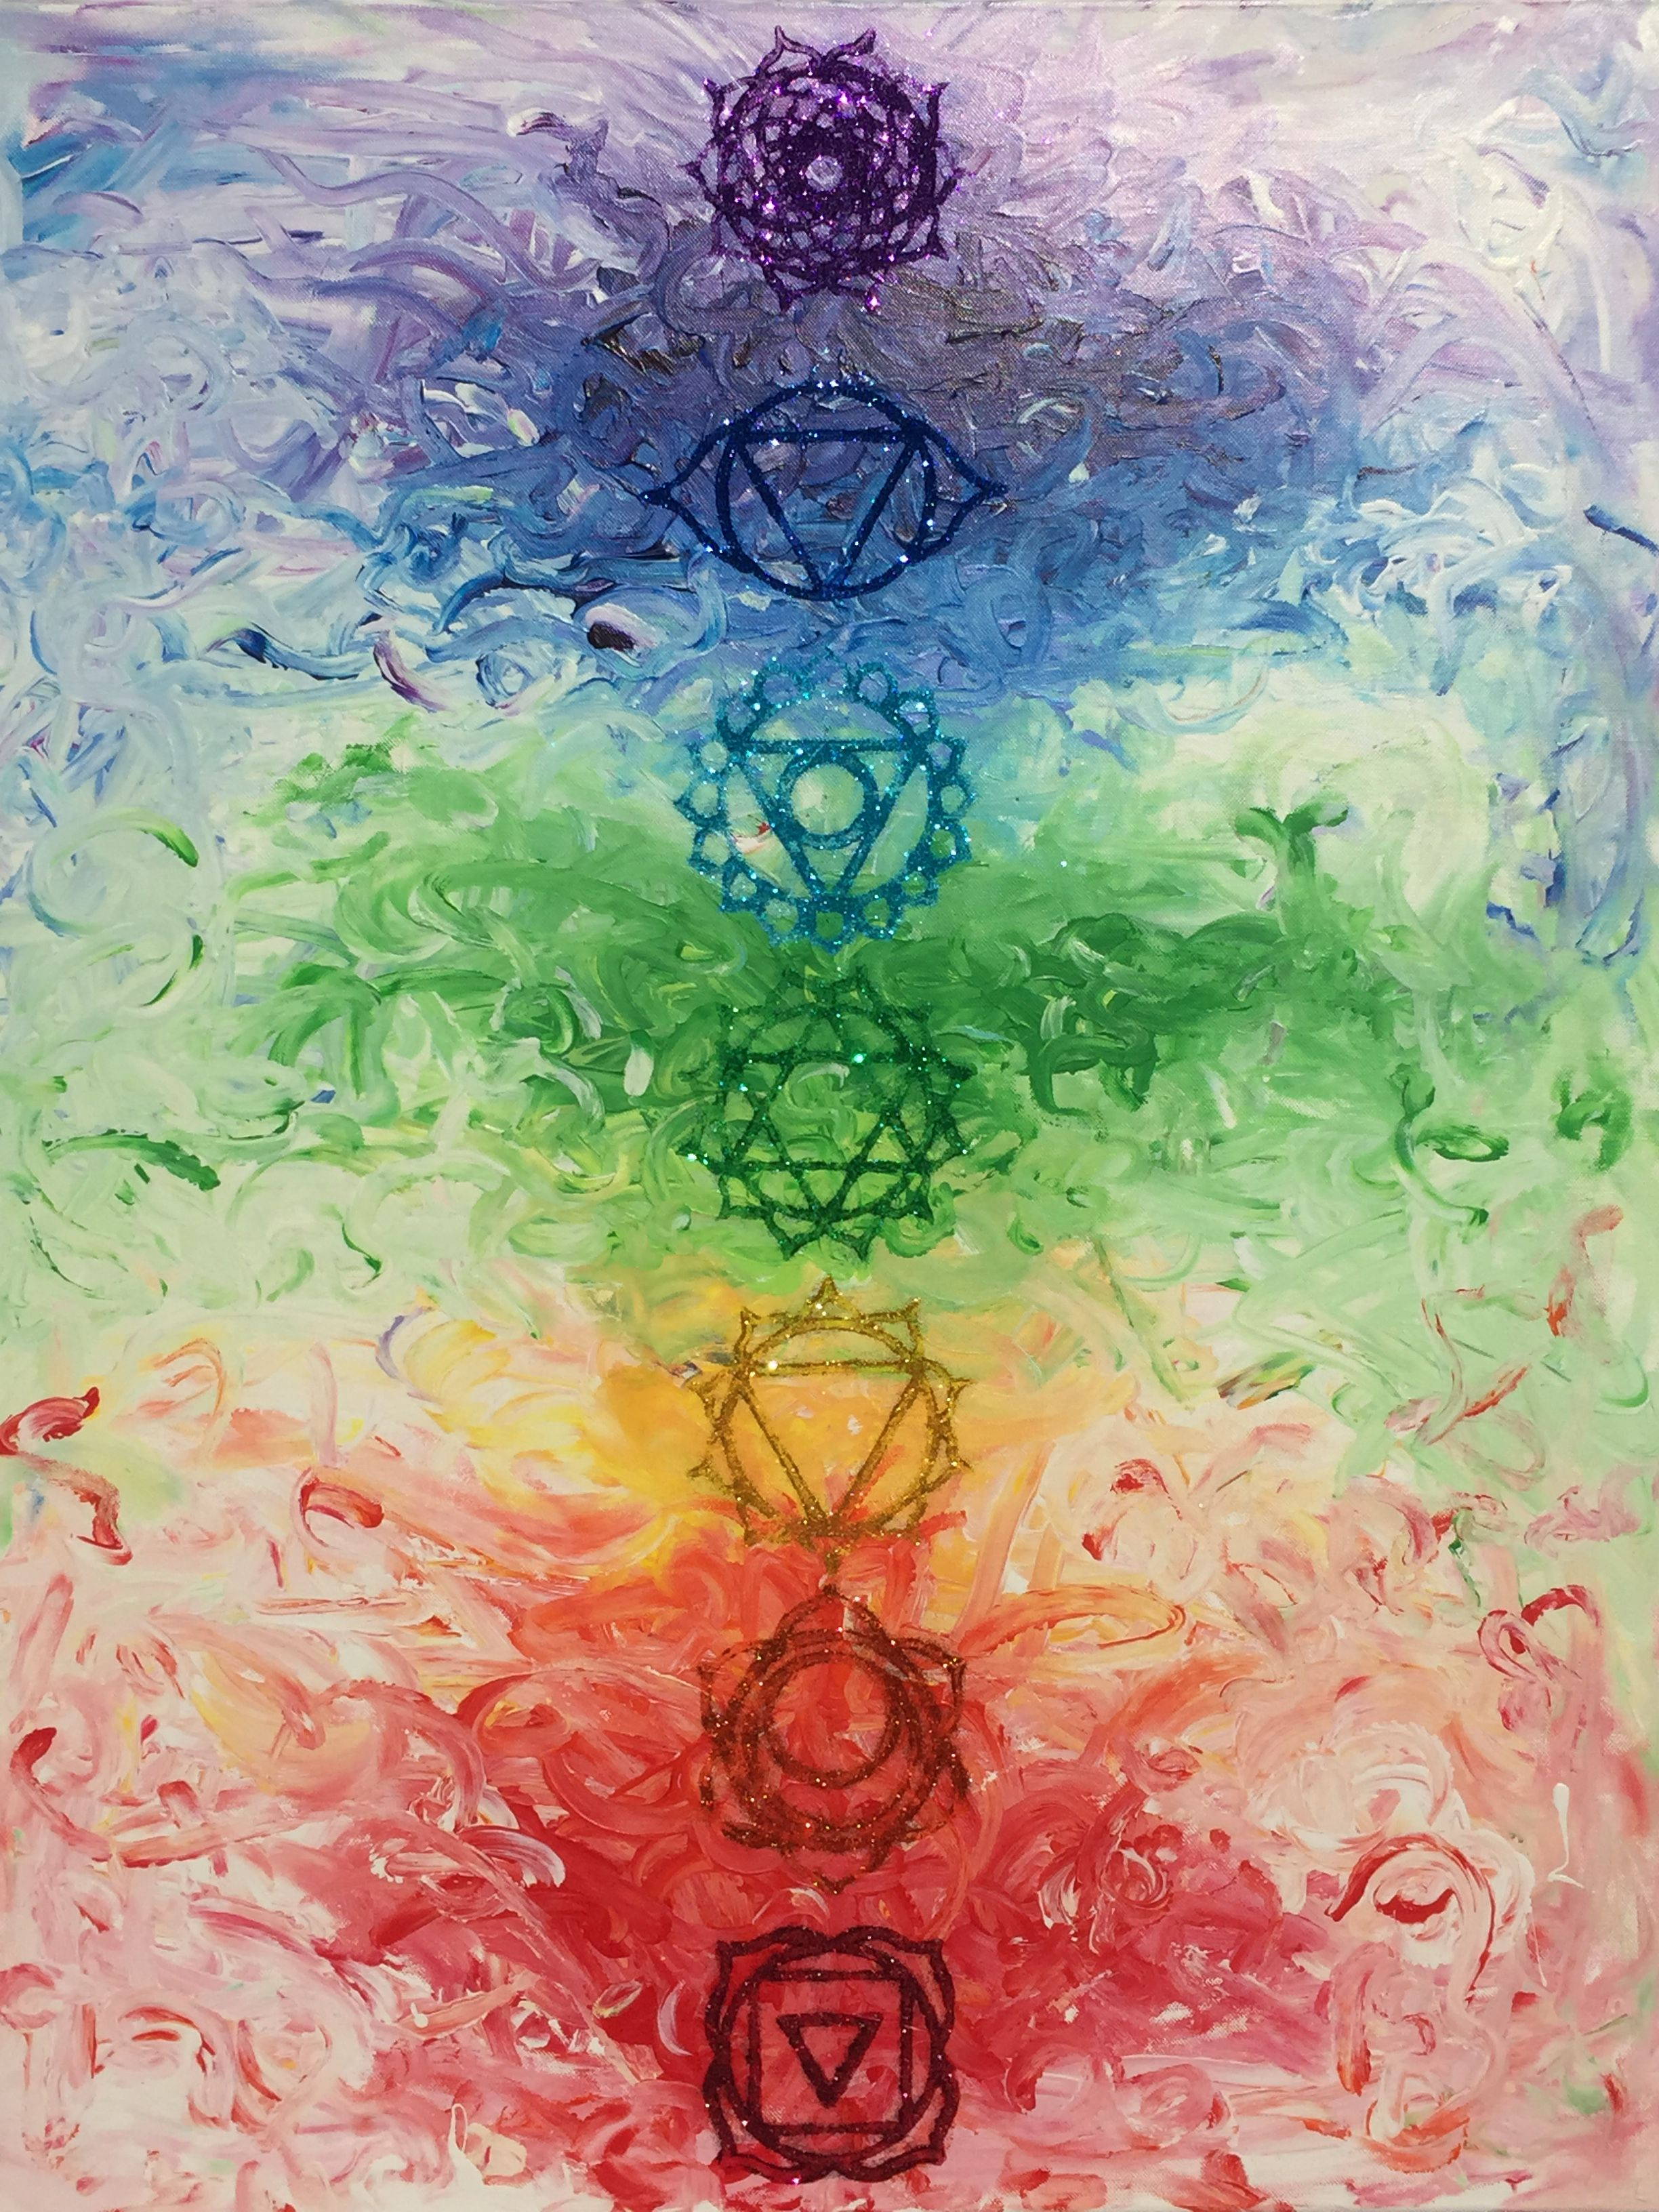 'My Son's Chakras' by Lynnette Roberts Fotos de cantores